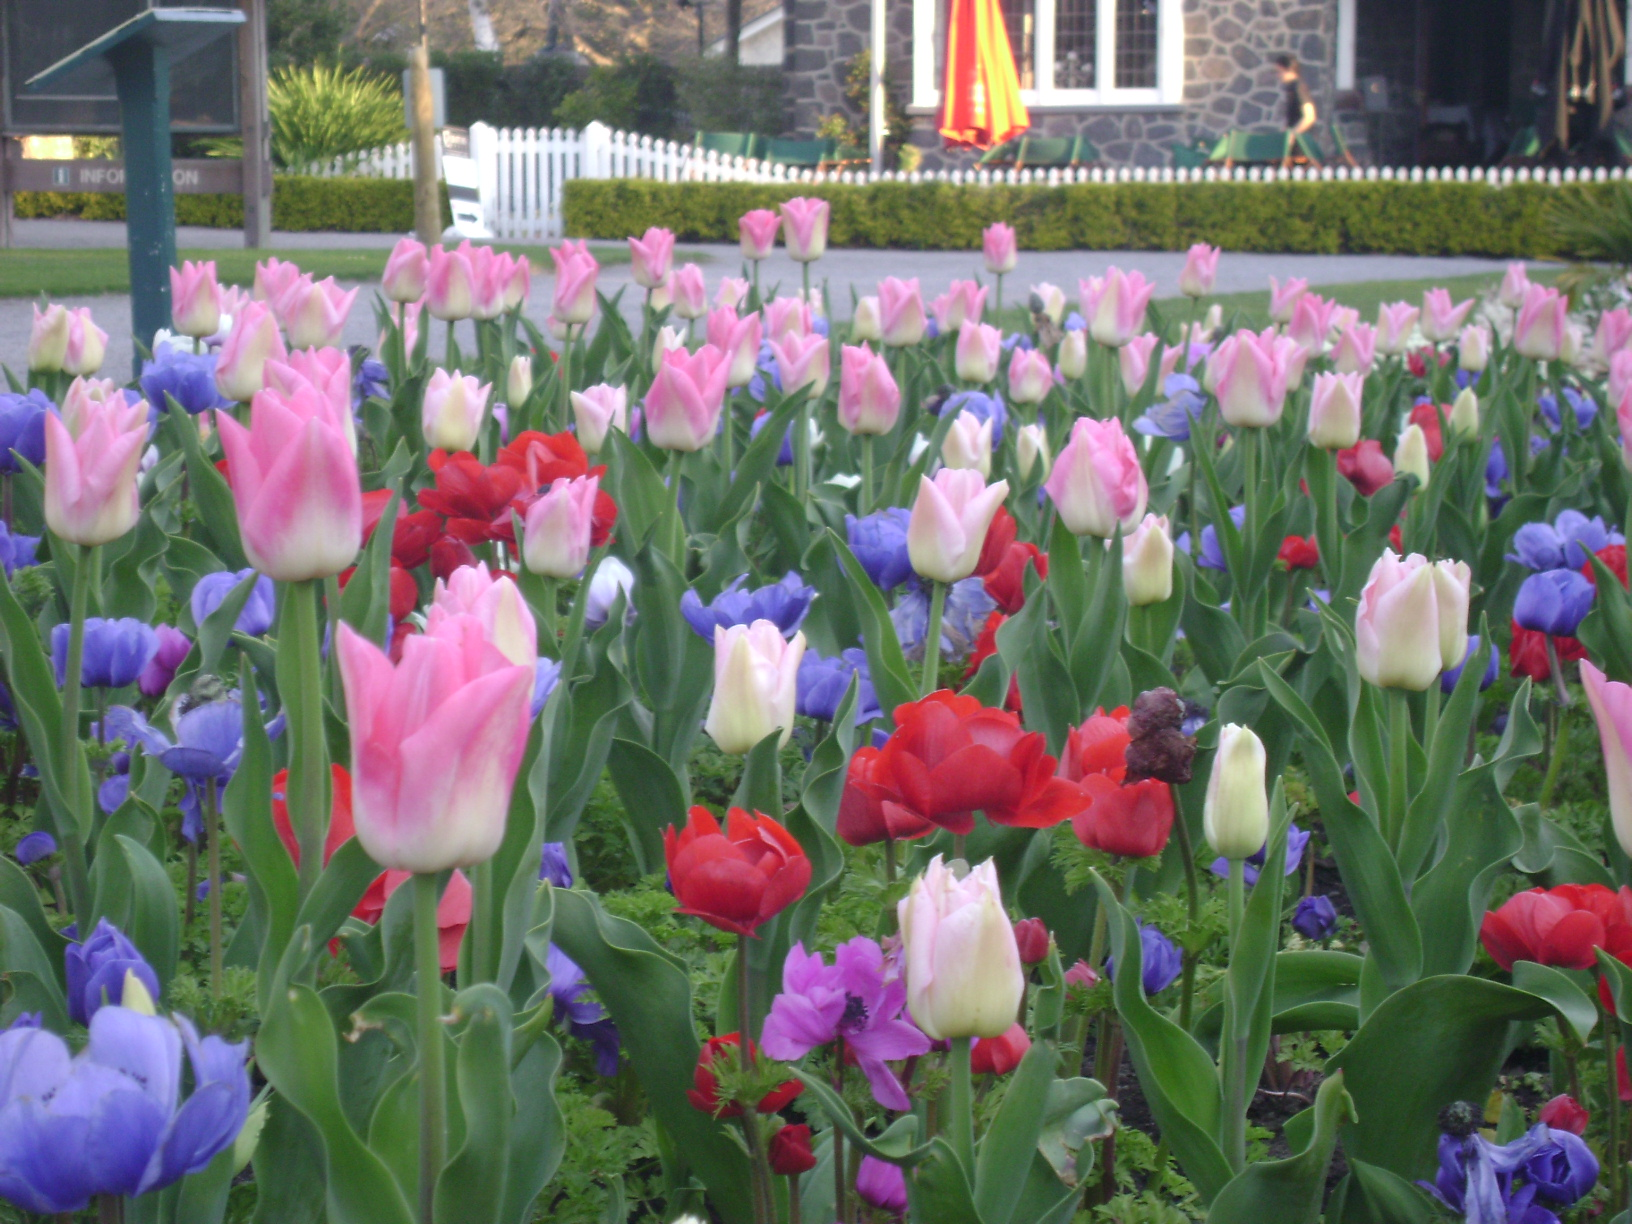 Tulips in Botanical Gardens, Christchurch